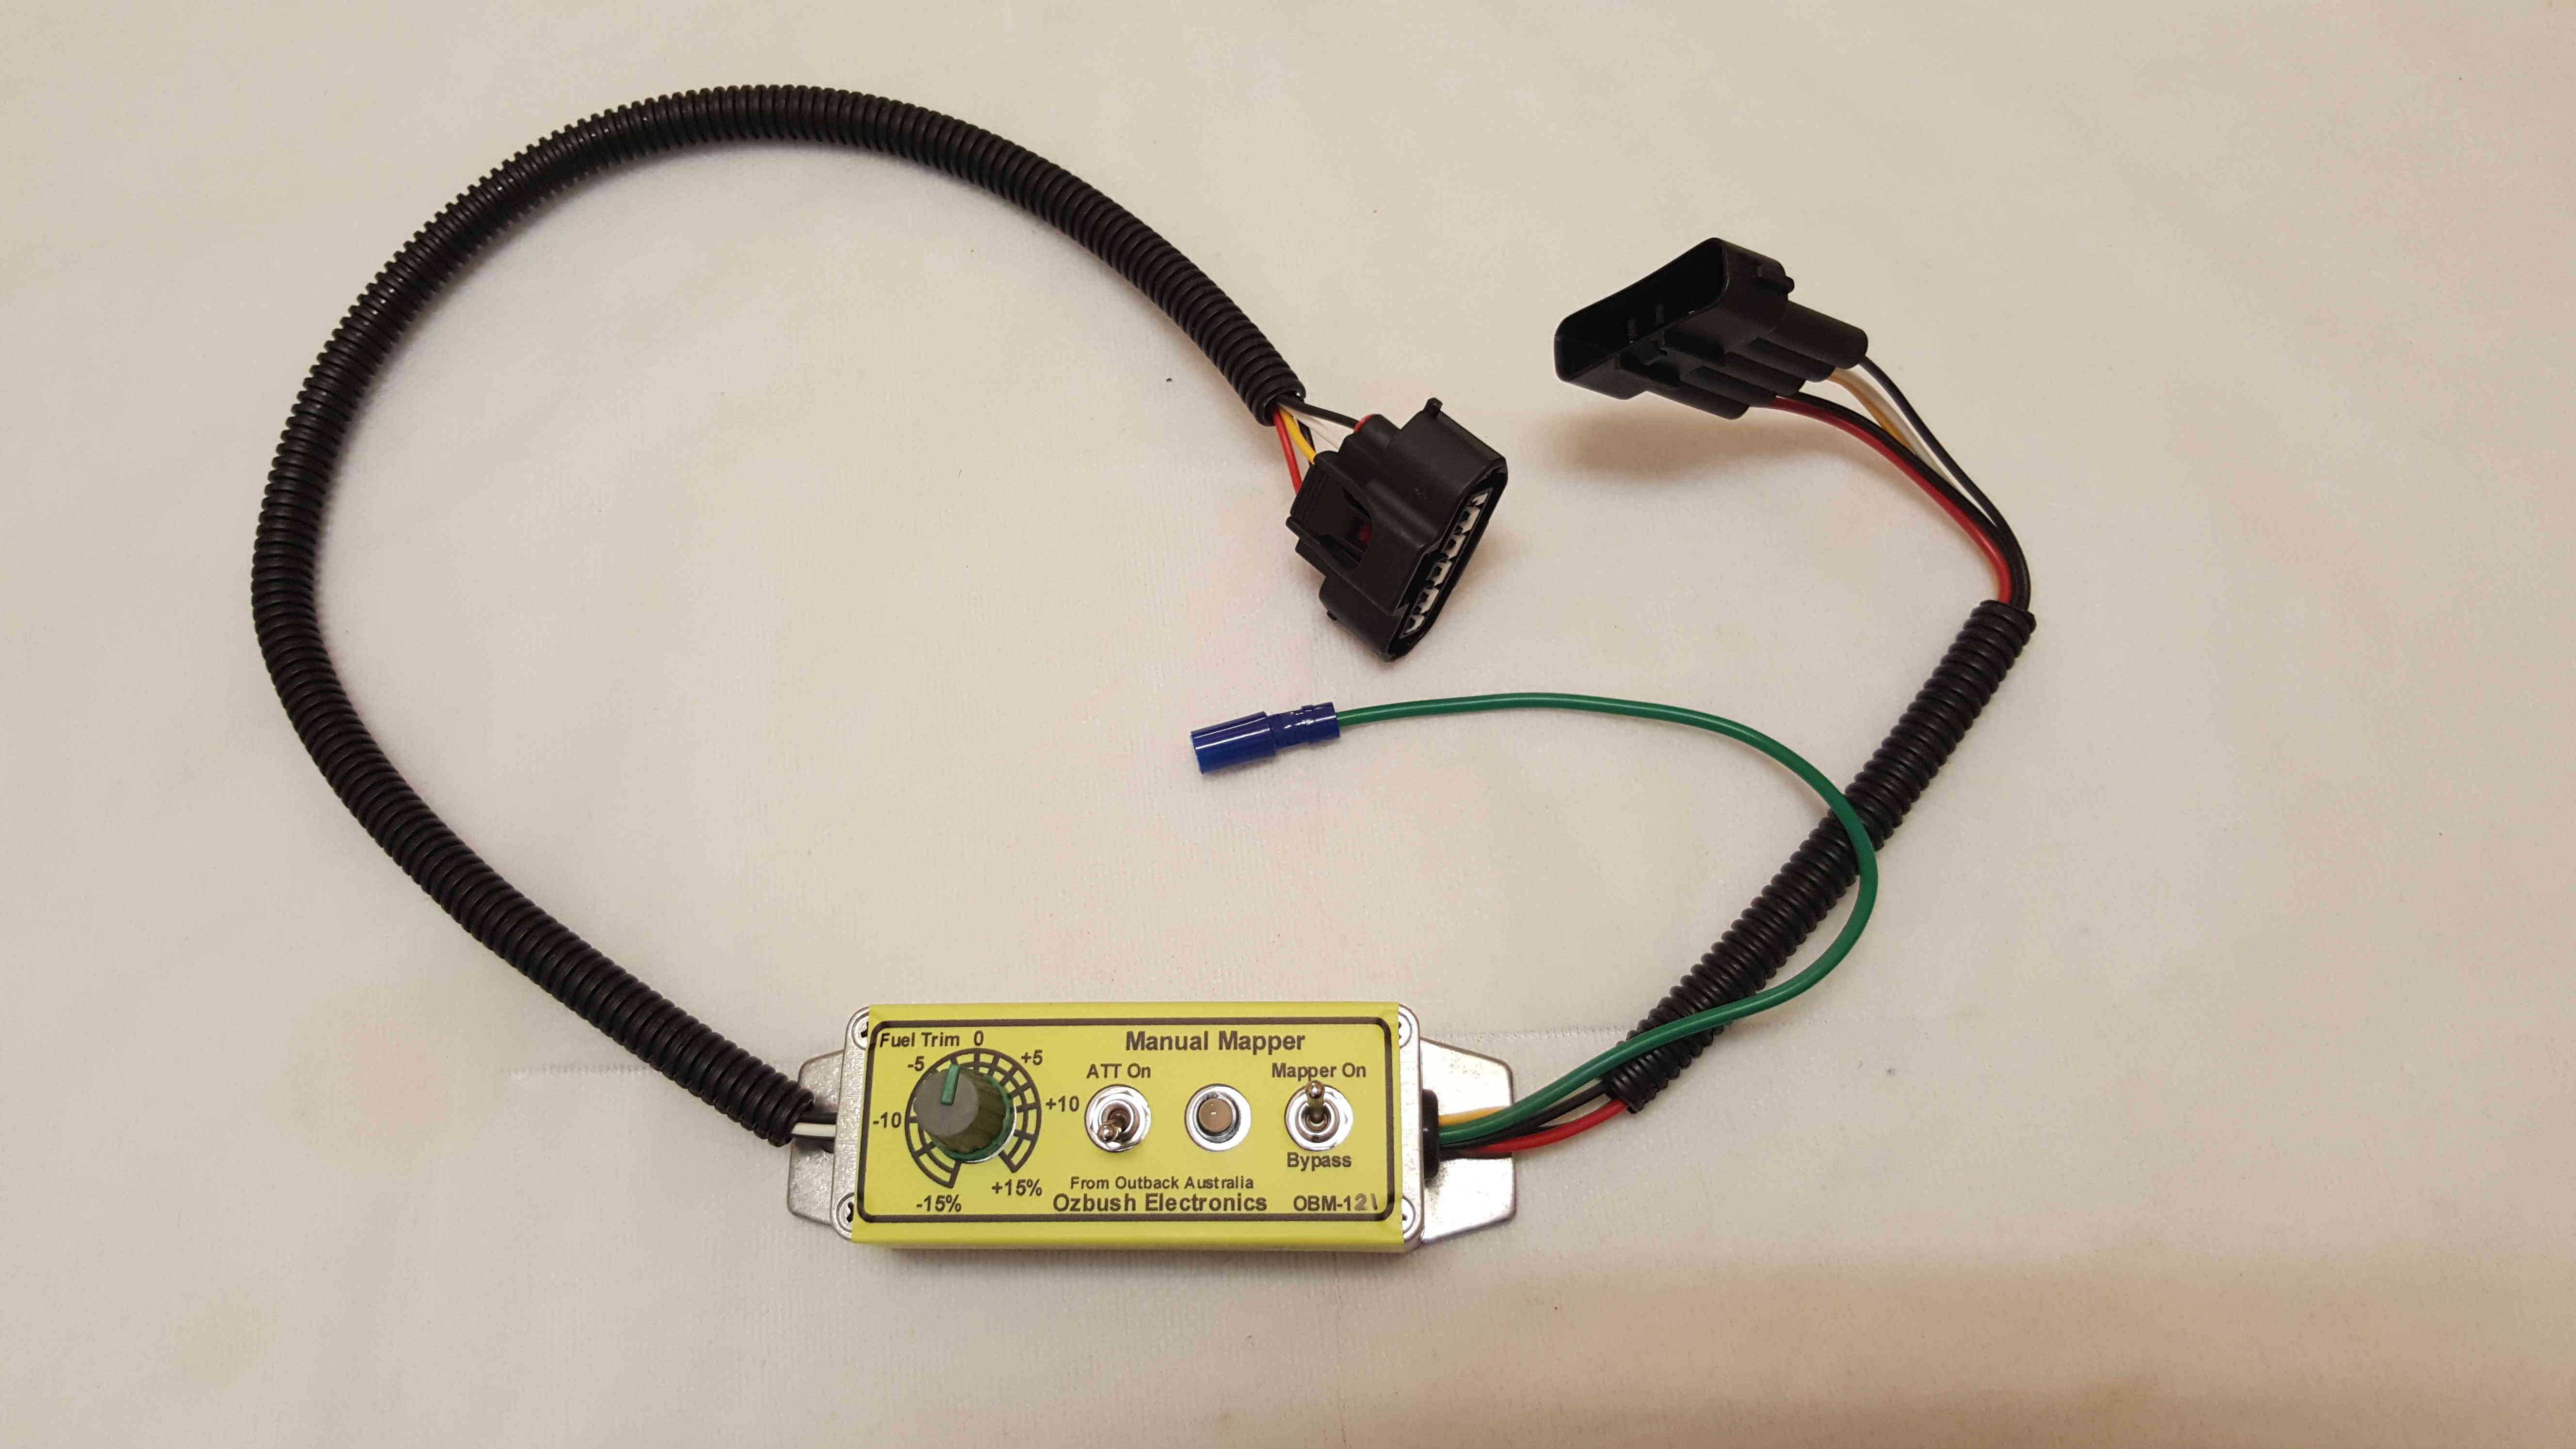 Ozbush Electronics Products And Purchase Info Fuel Trim Wiring Diagram Fully User Programmable Att Artifical Turbo Boost Function To Inject More For Acceleration Then Return